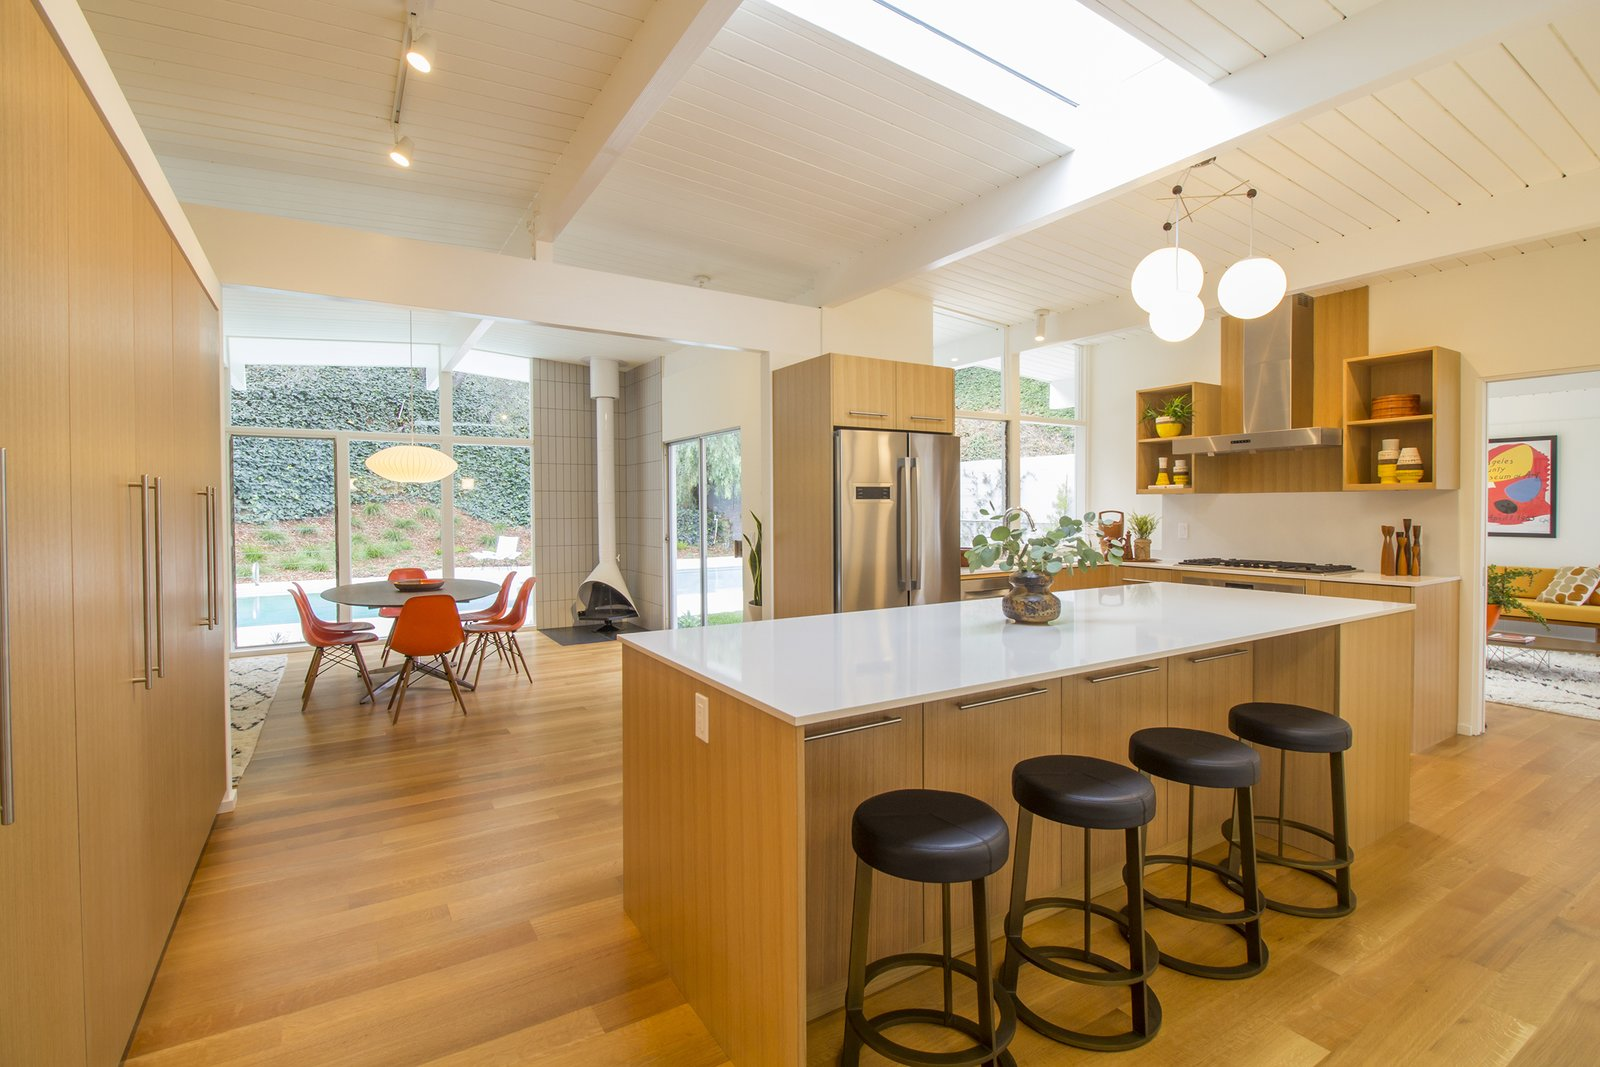 Kitchen, Quartzite, Wood, Pendant, Medium Hardwood, Track, Range, Open, Refrigerator, and Range Hood The remodelled kitchen.  Best Kitchen Refrigerator Wood Quartzite Range Photos from A Meticulously Updated Midcentury in L.A. Asks $1.49M